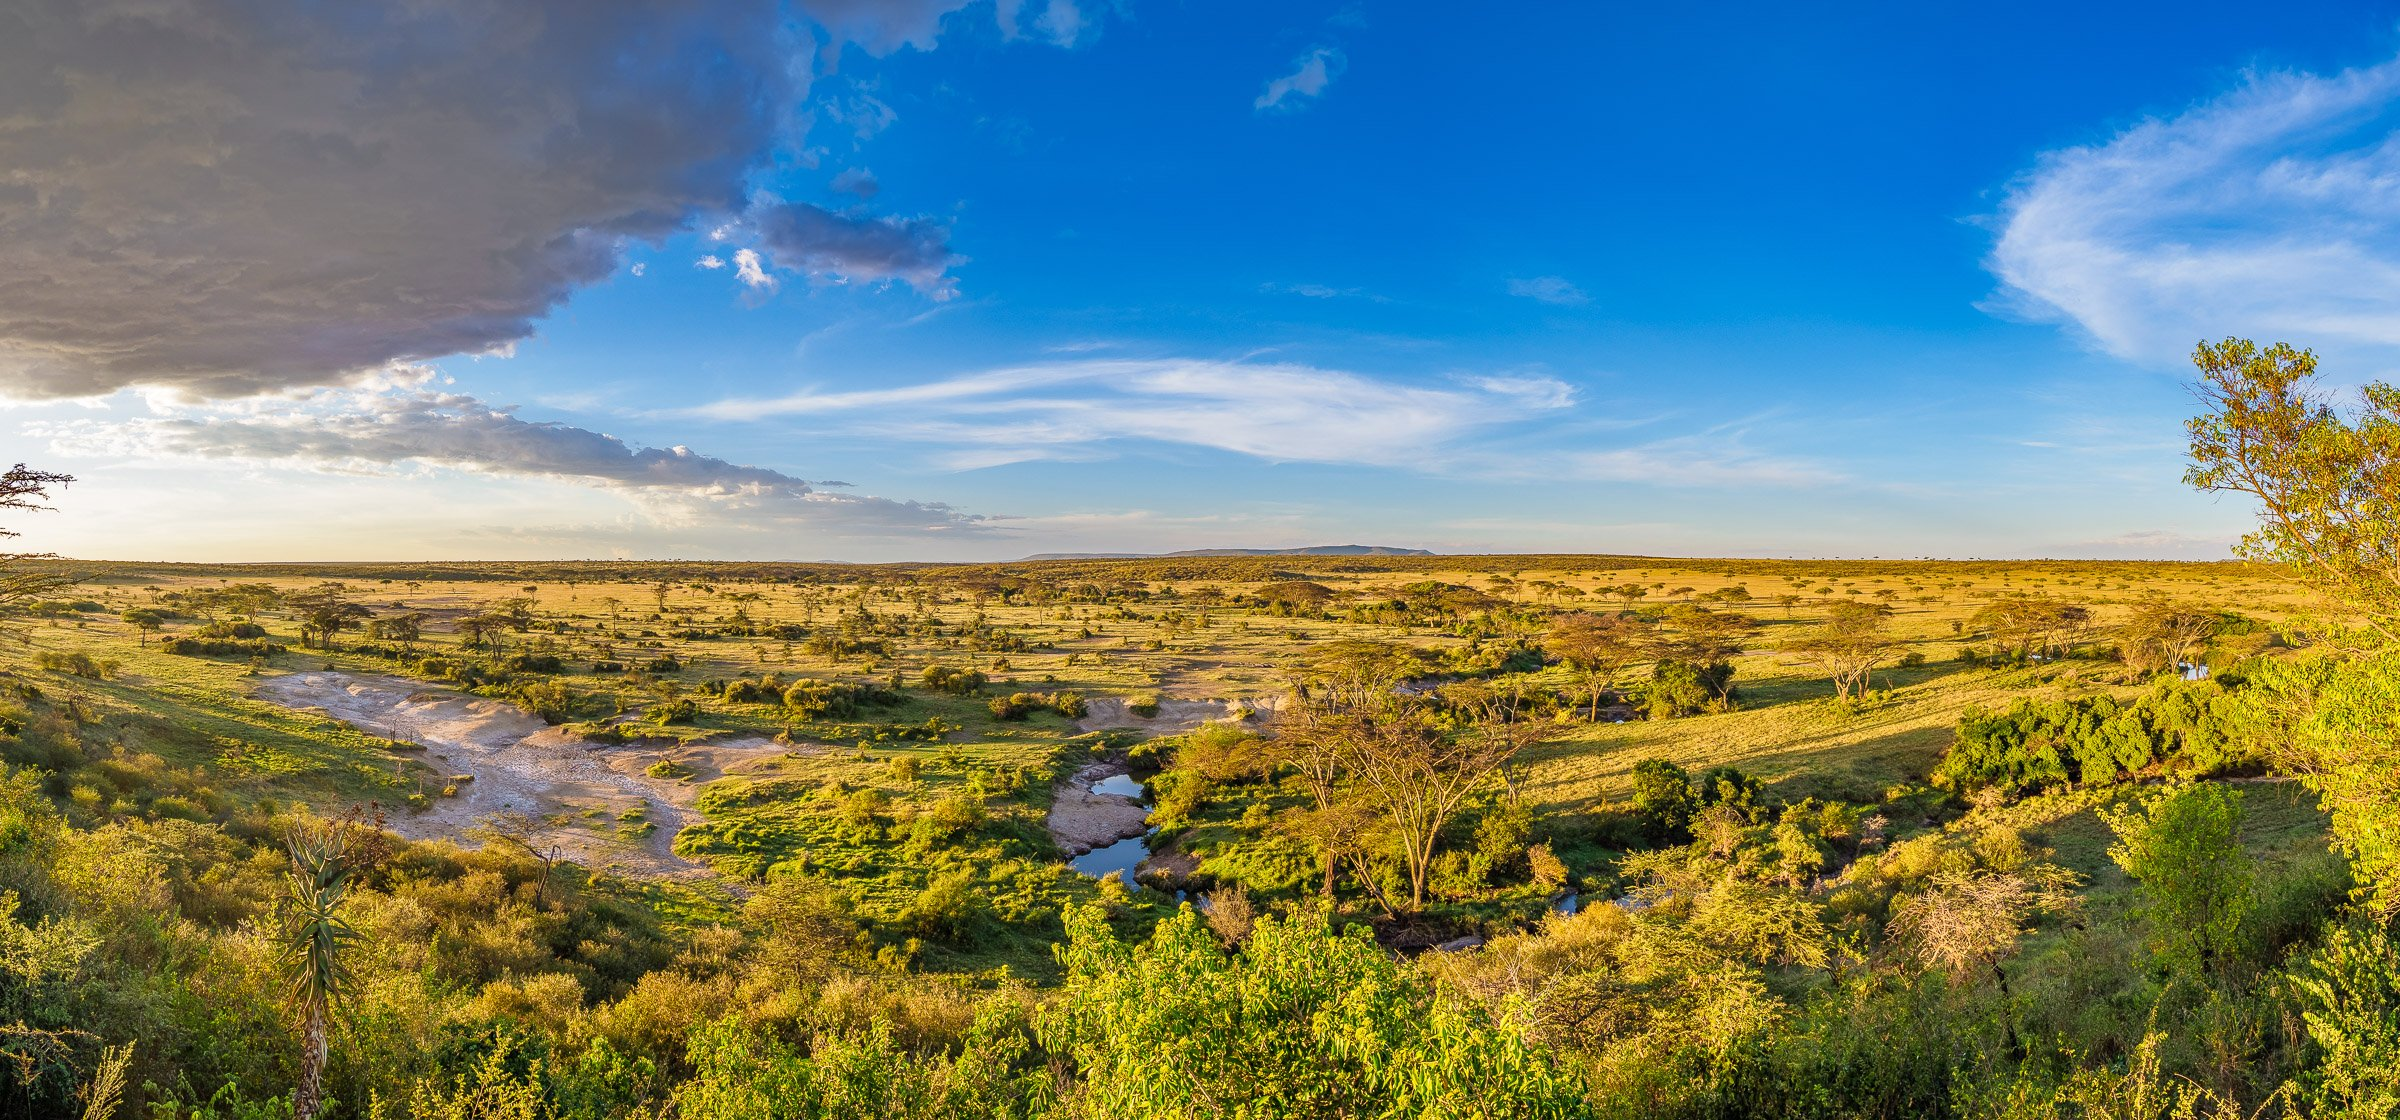 The view from Eagle View Camp, the landscape of the Masai Mara